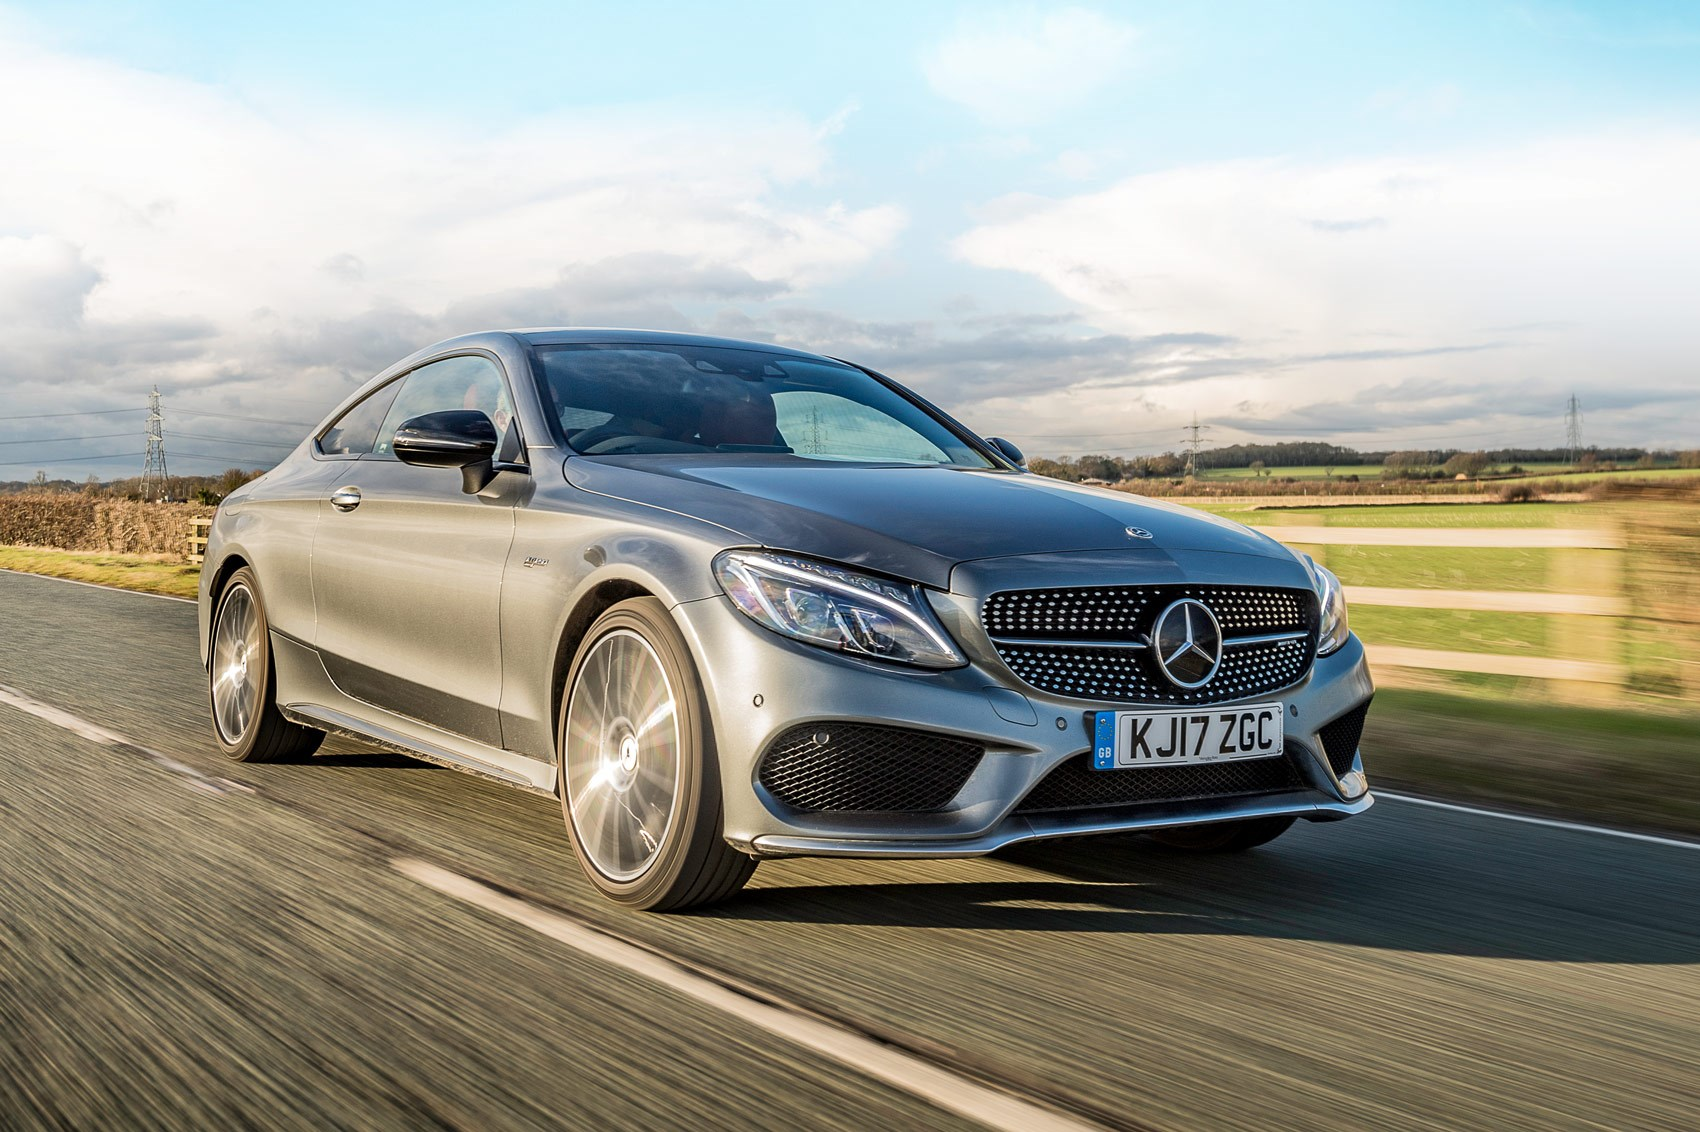 Mercedes Amg C43 Coupe 2018 Long Term Test Review Car Magazine